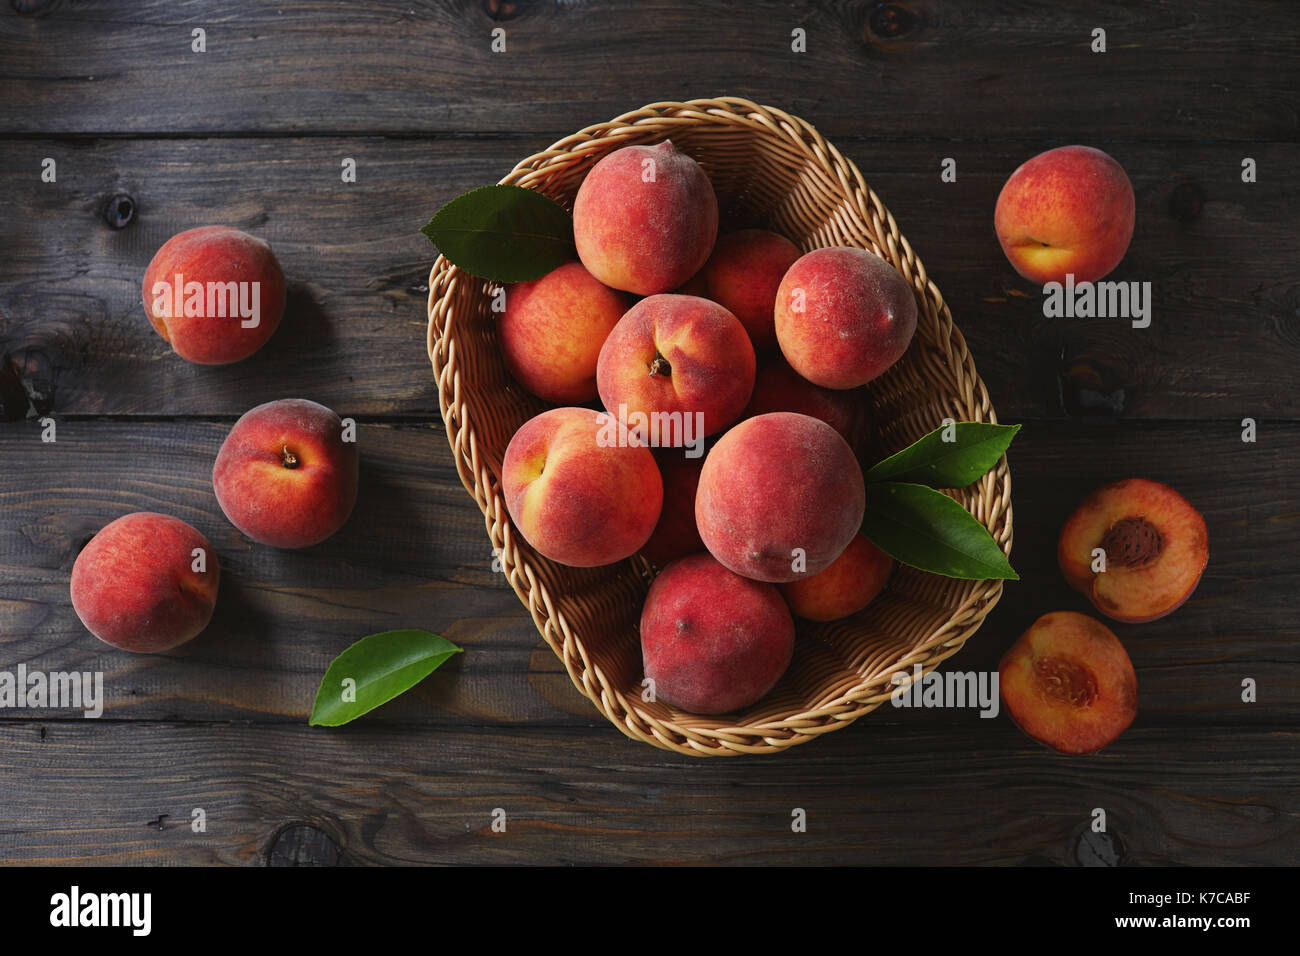 Basket of fresh peaches on a wooden table - Stock Image